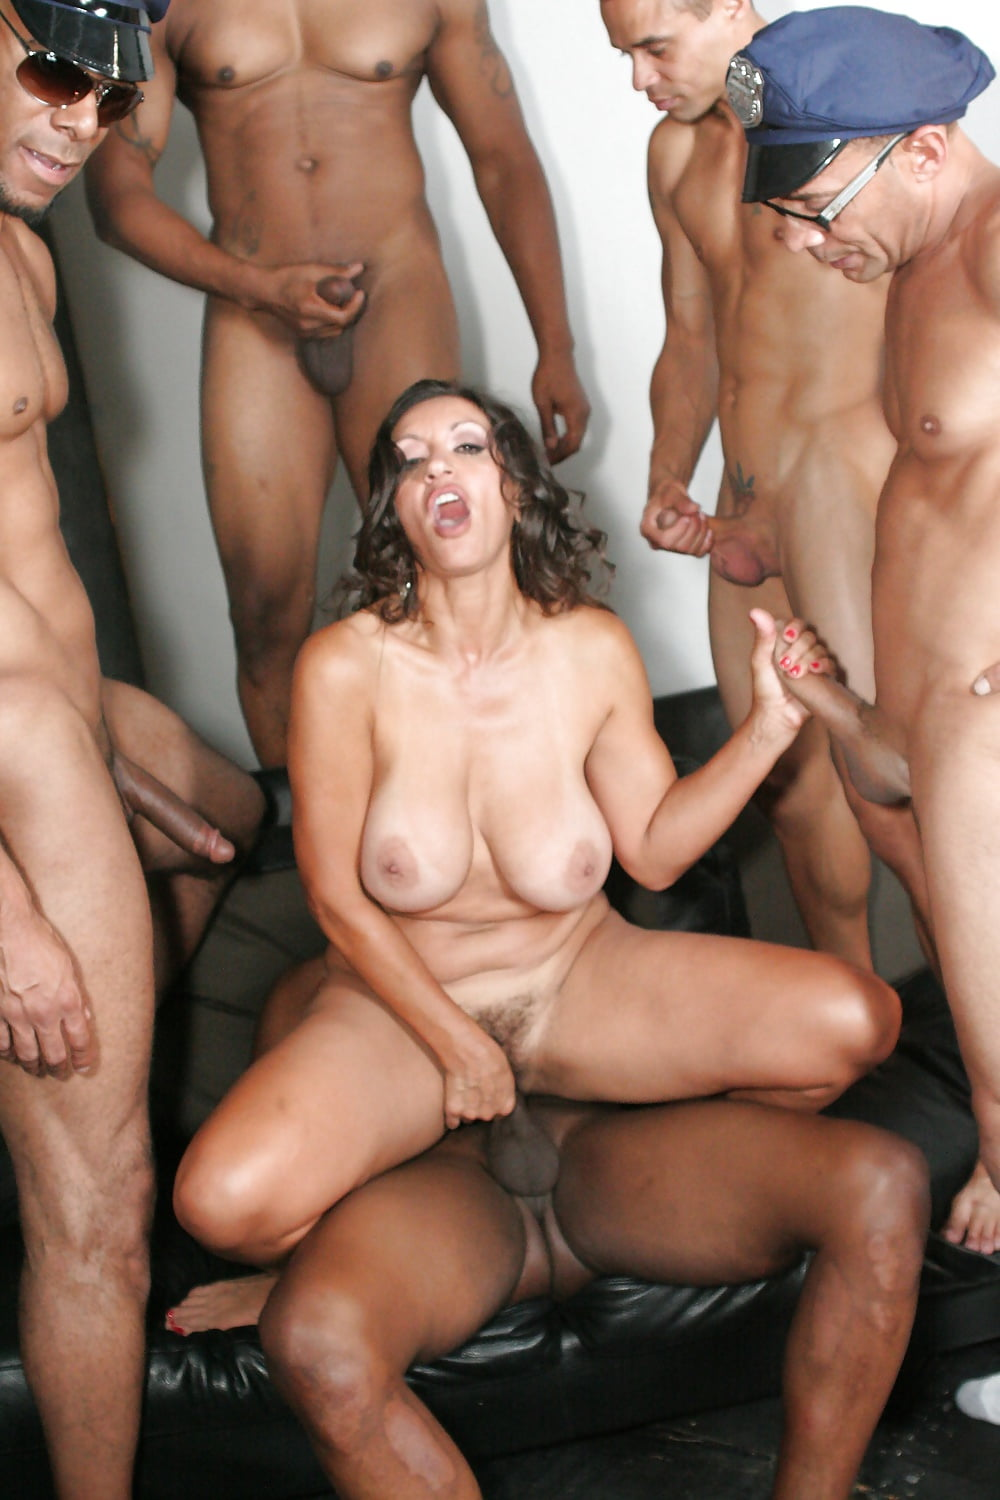 milf-gang-bang-by-coworkers-older-women-like